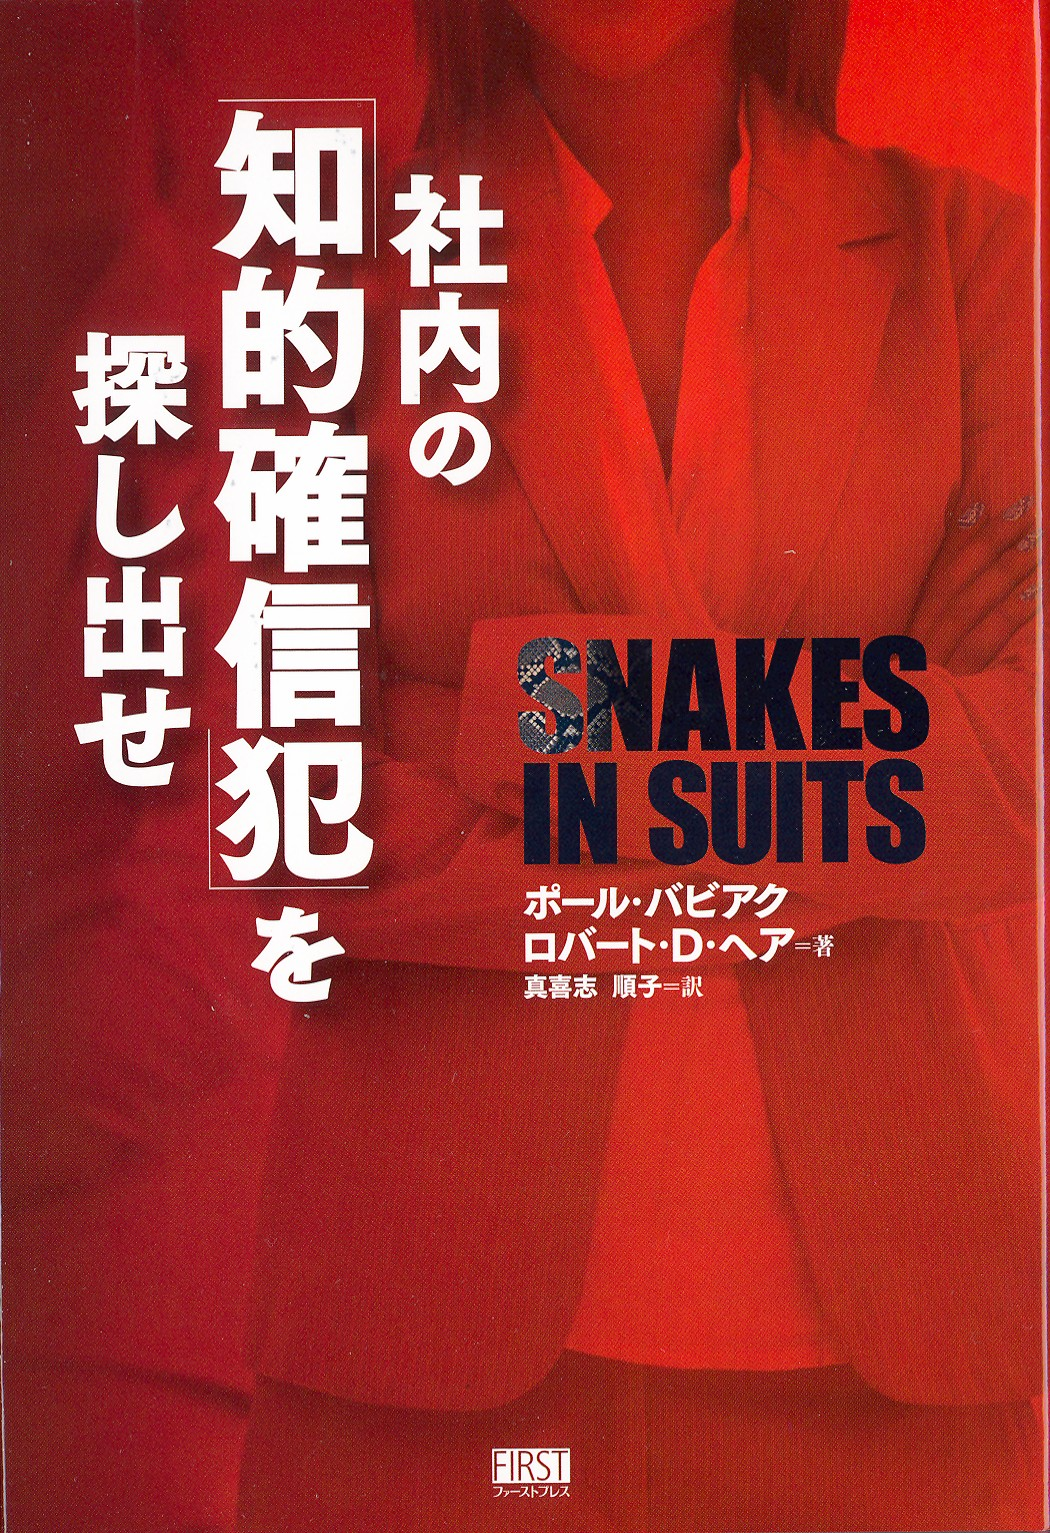 Japanese Snakes in Suits